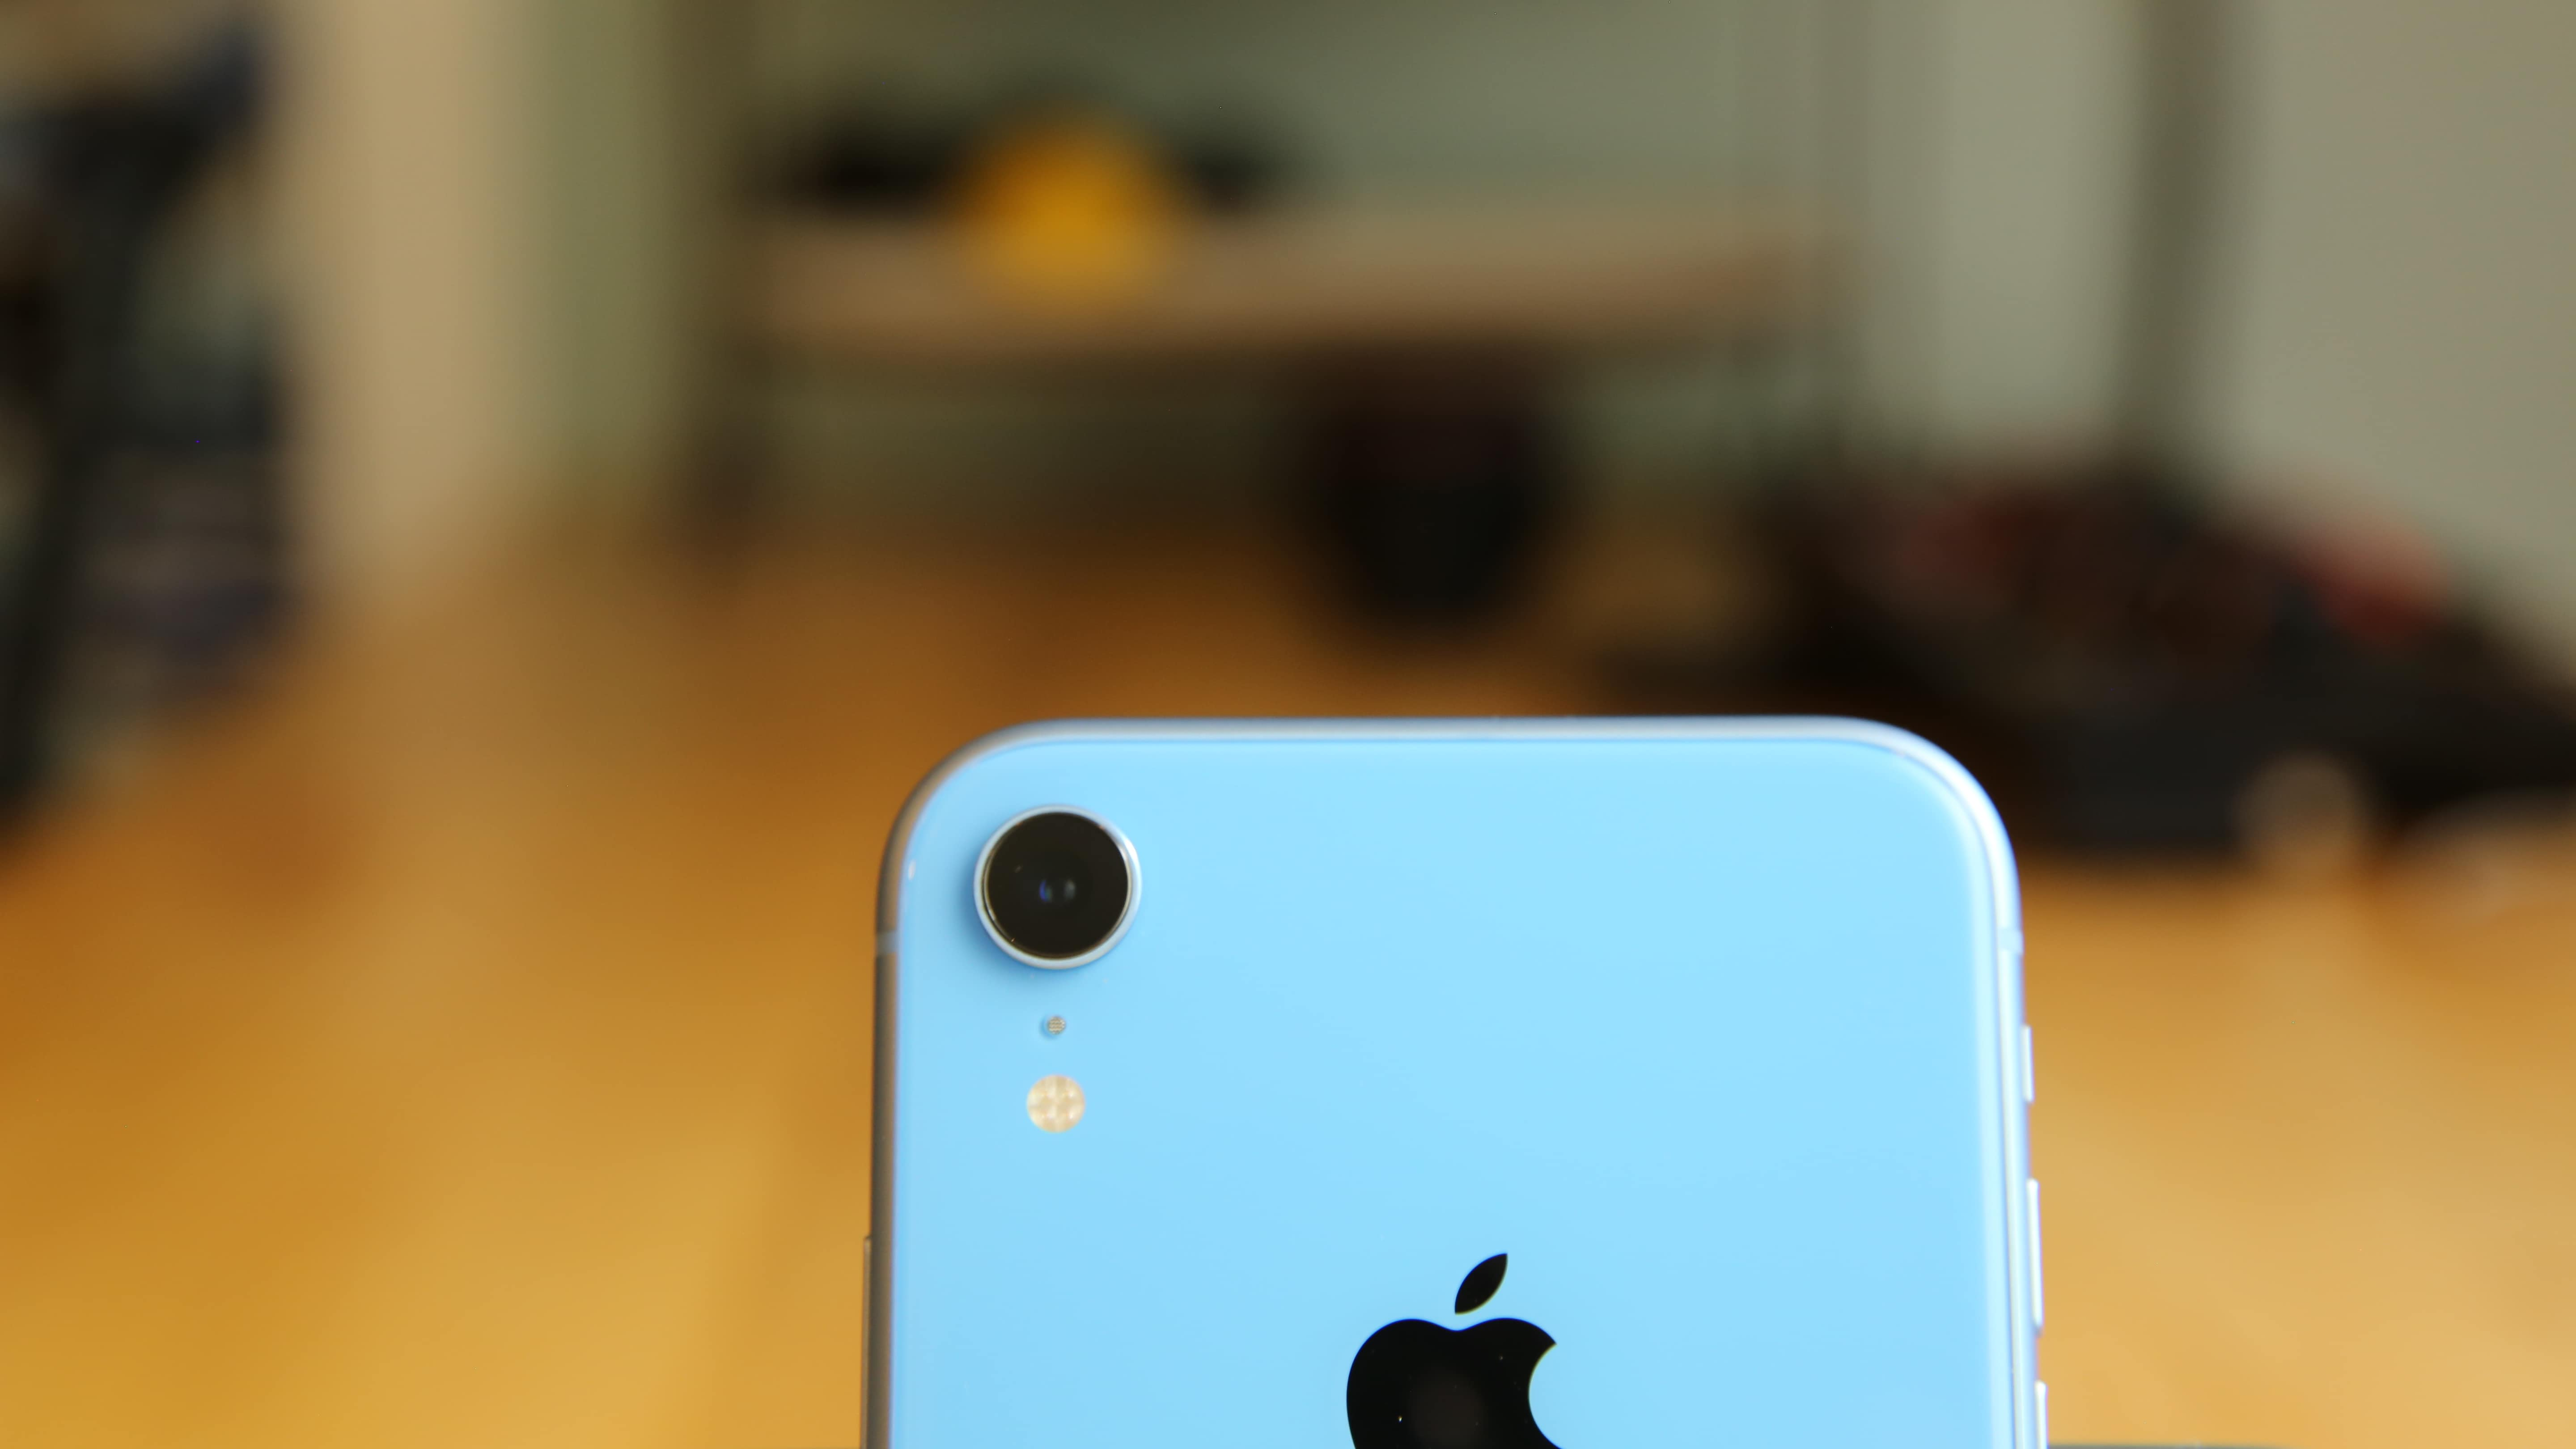 The iPhone XR packs a 12-megapixel single-lens camera.